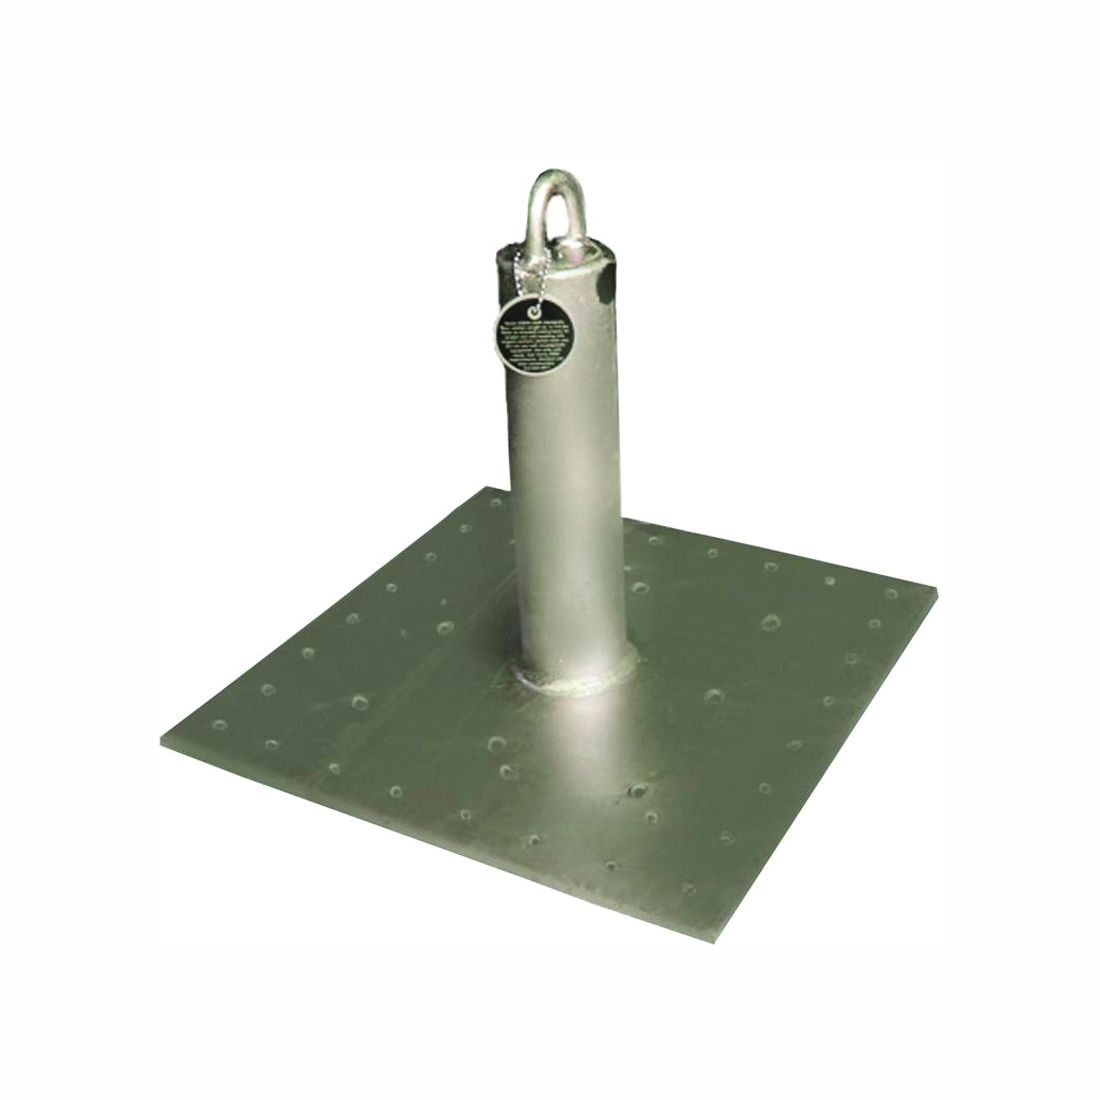 Picture of Qualcraft Industries 00645 Roof Anchor, Steel, Galvanized